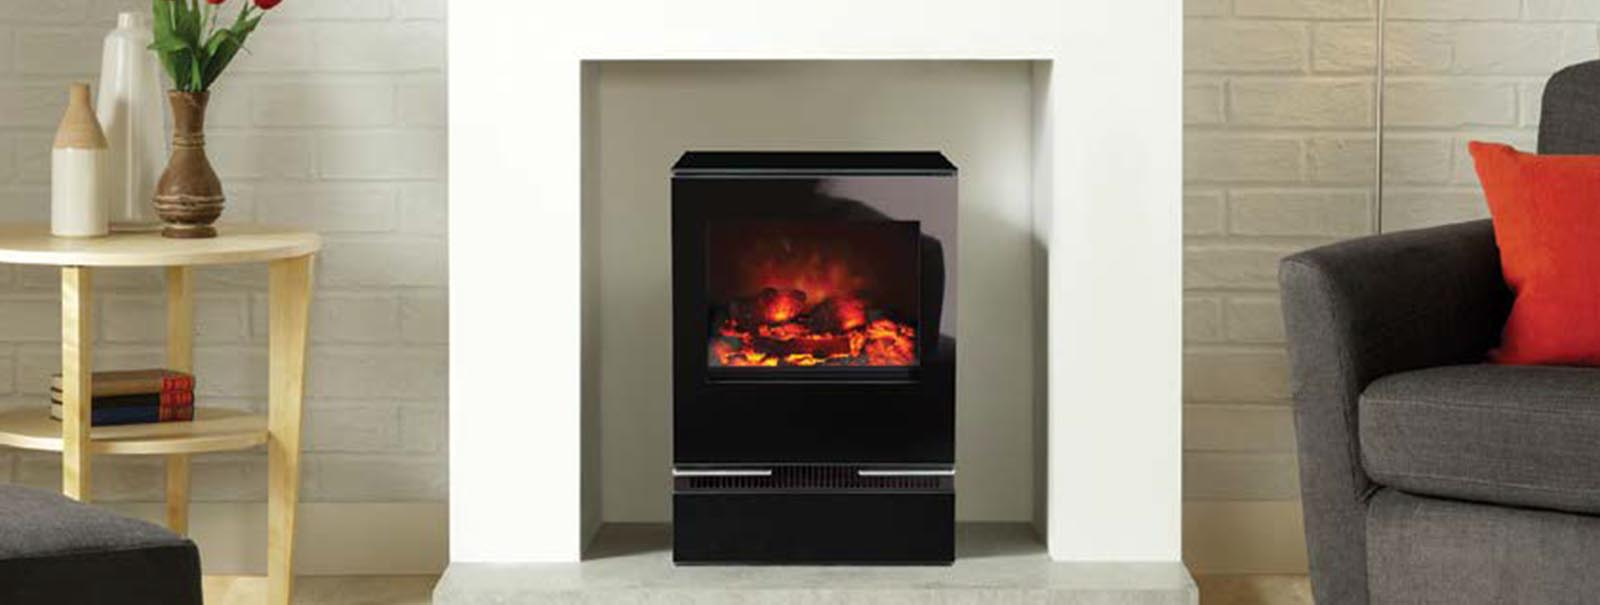 Electricstoves Electric Stoves In Middlesbrough Stockton On Tees Whitby